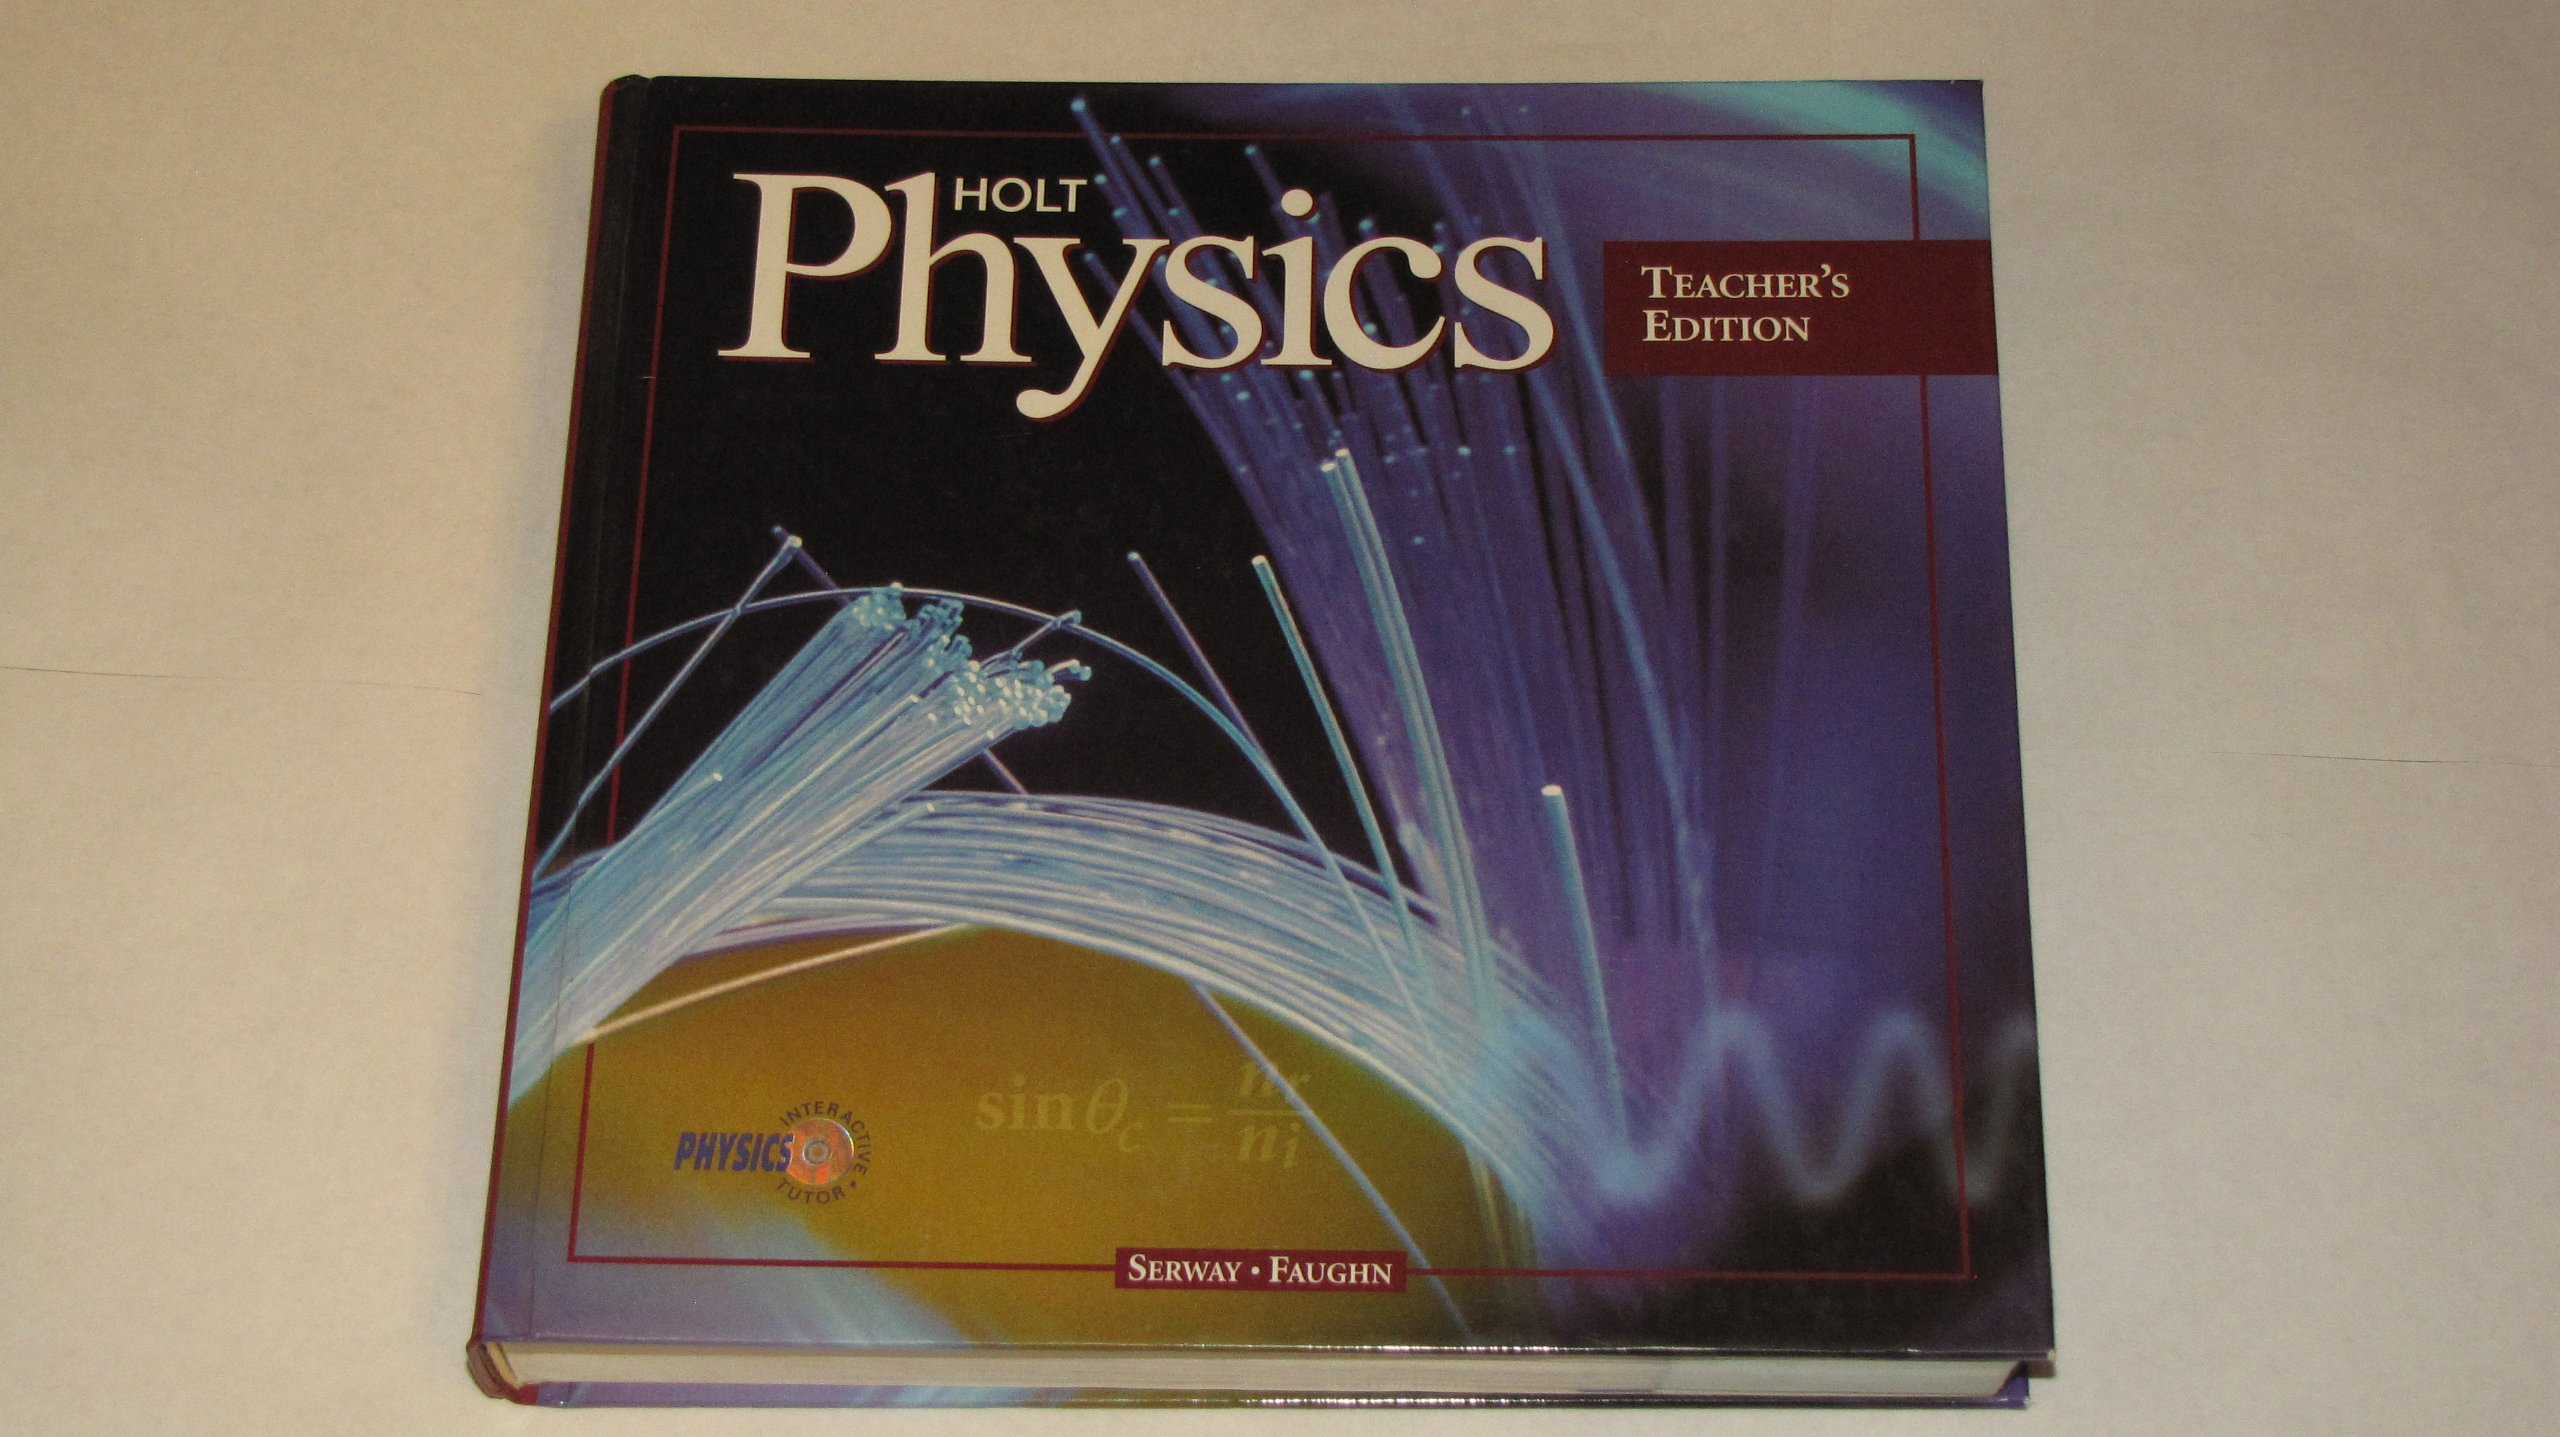 Holt Physics Textbook Pdf Free Download